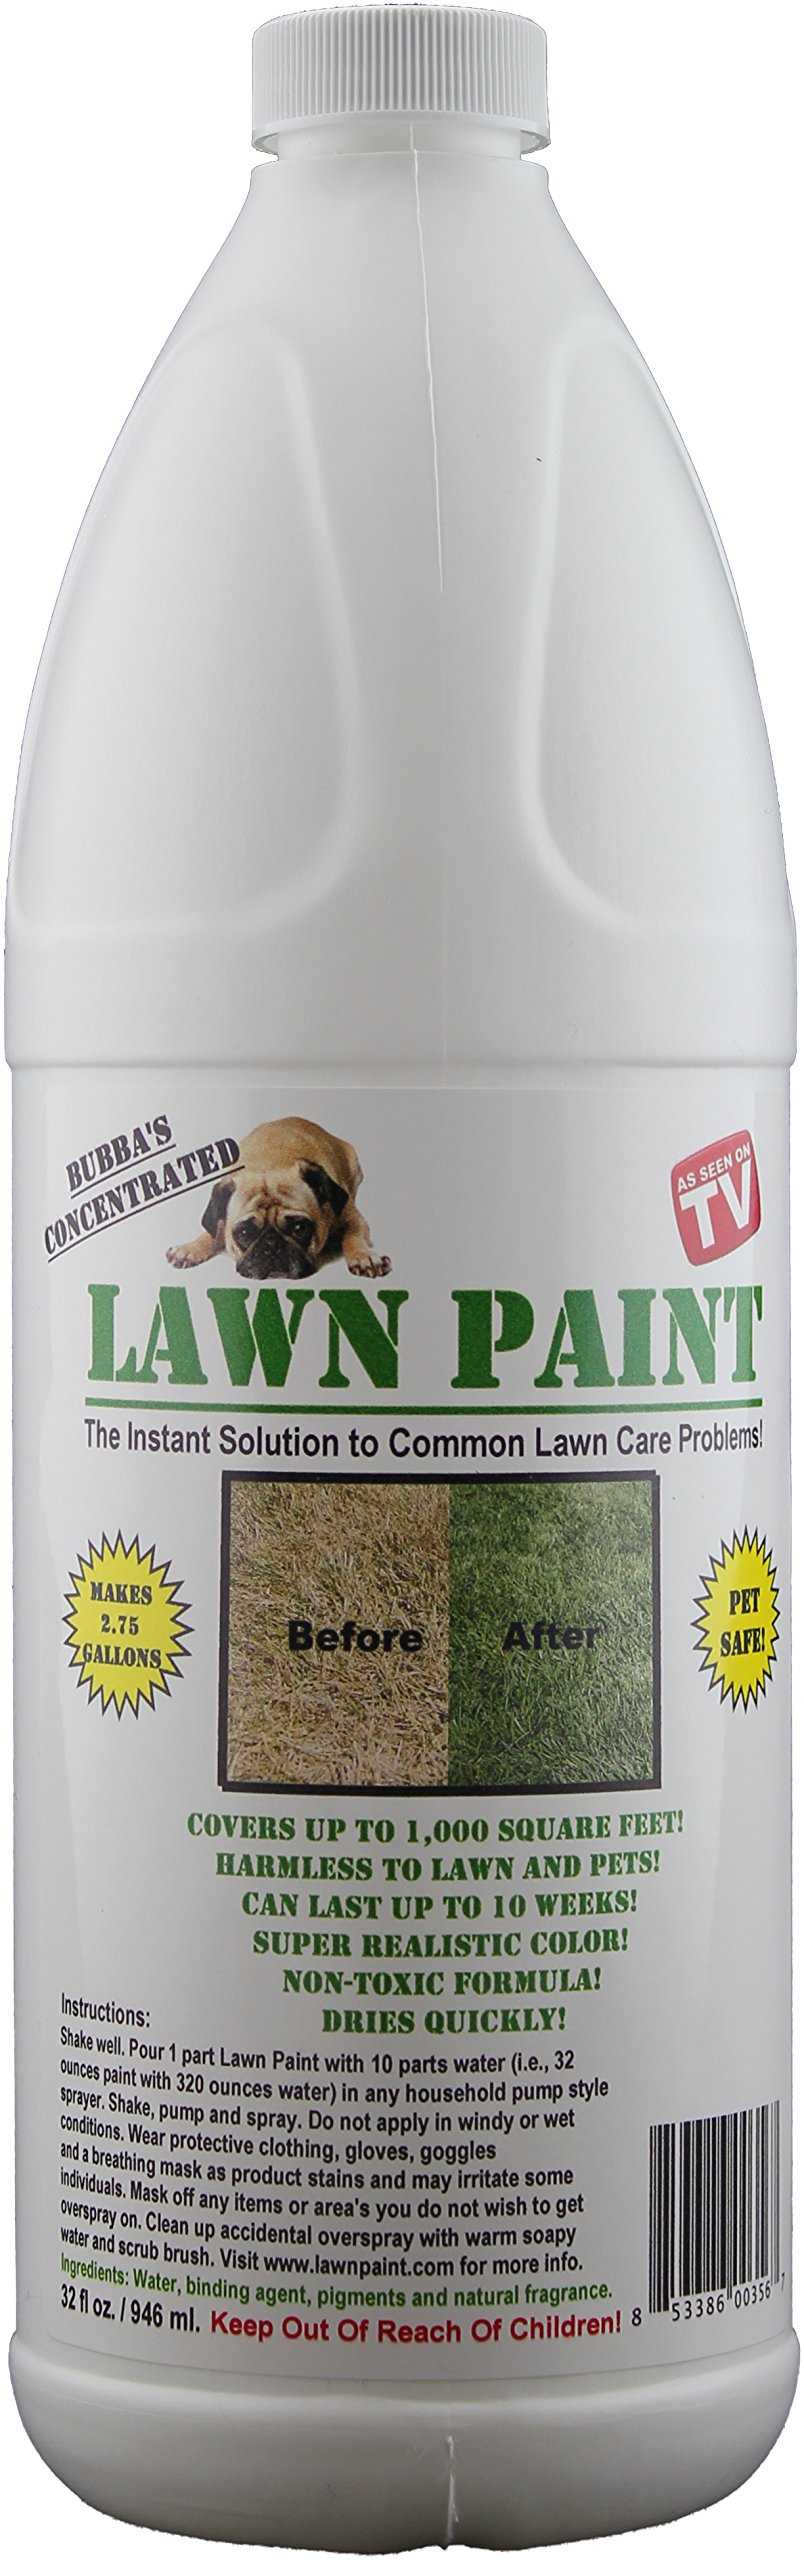 Lawn Paint Concentrate Lawn Paint, Covers up to 1,000 sq. ft.